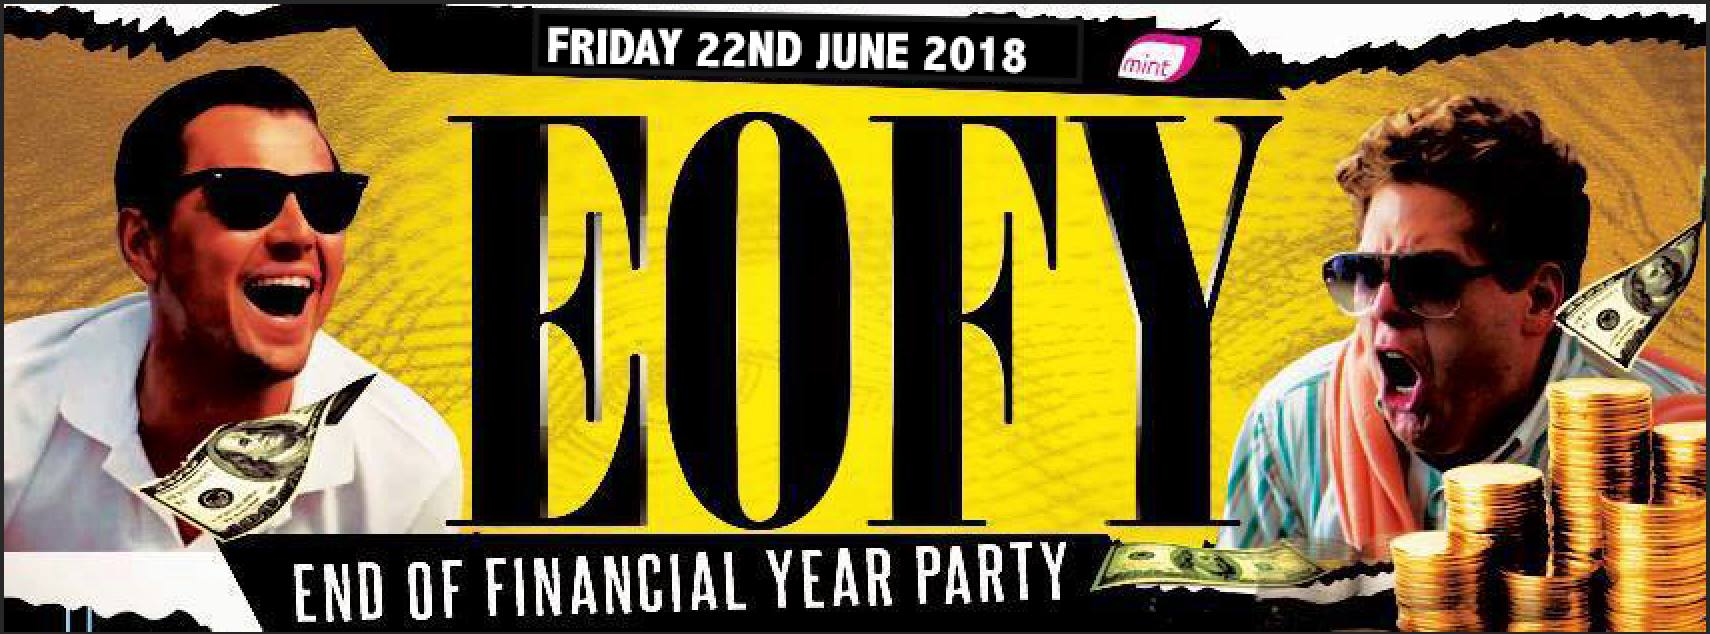 End Of Financial Year Party At Mint Nightclub